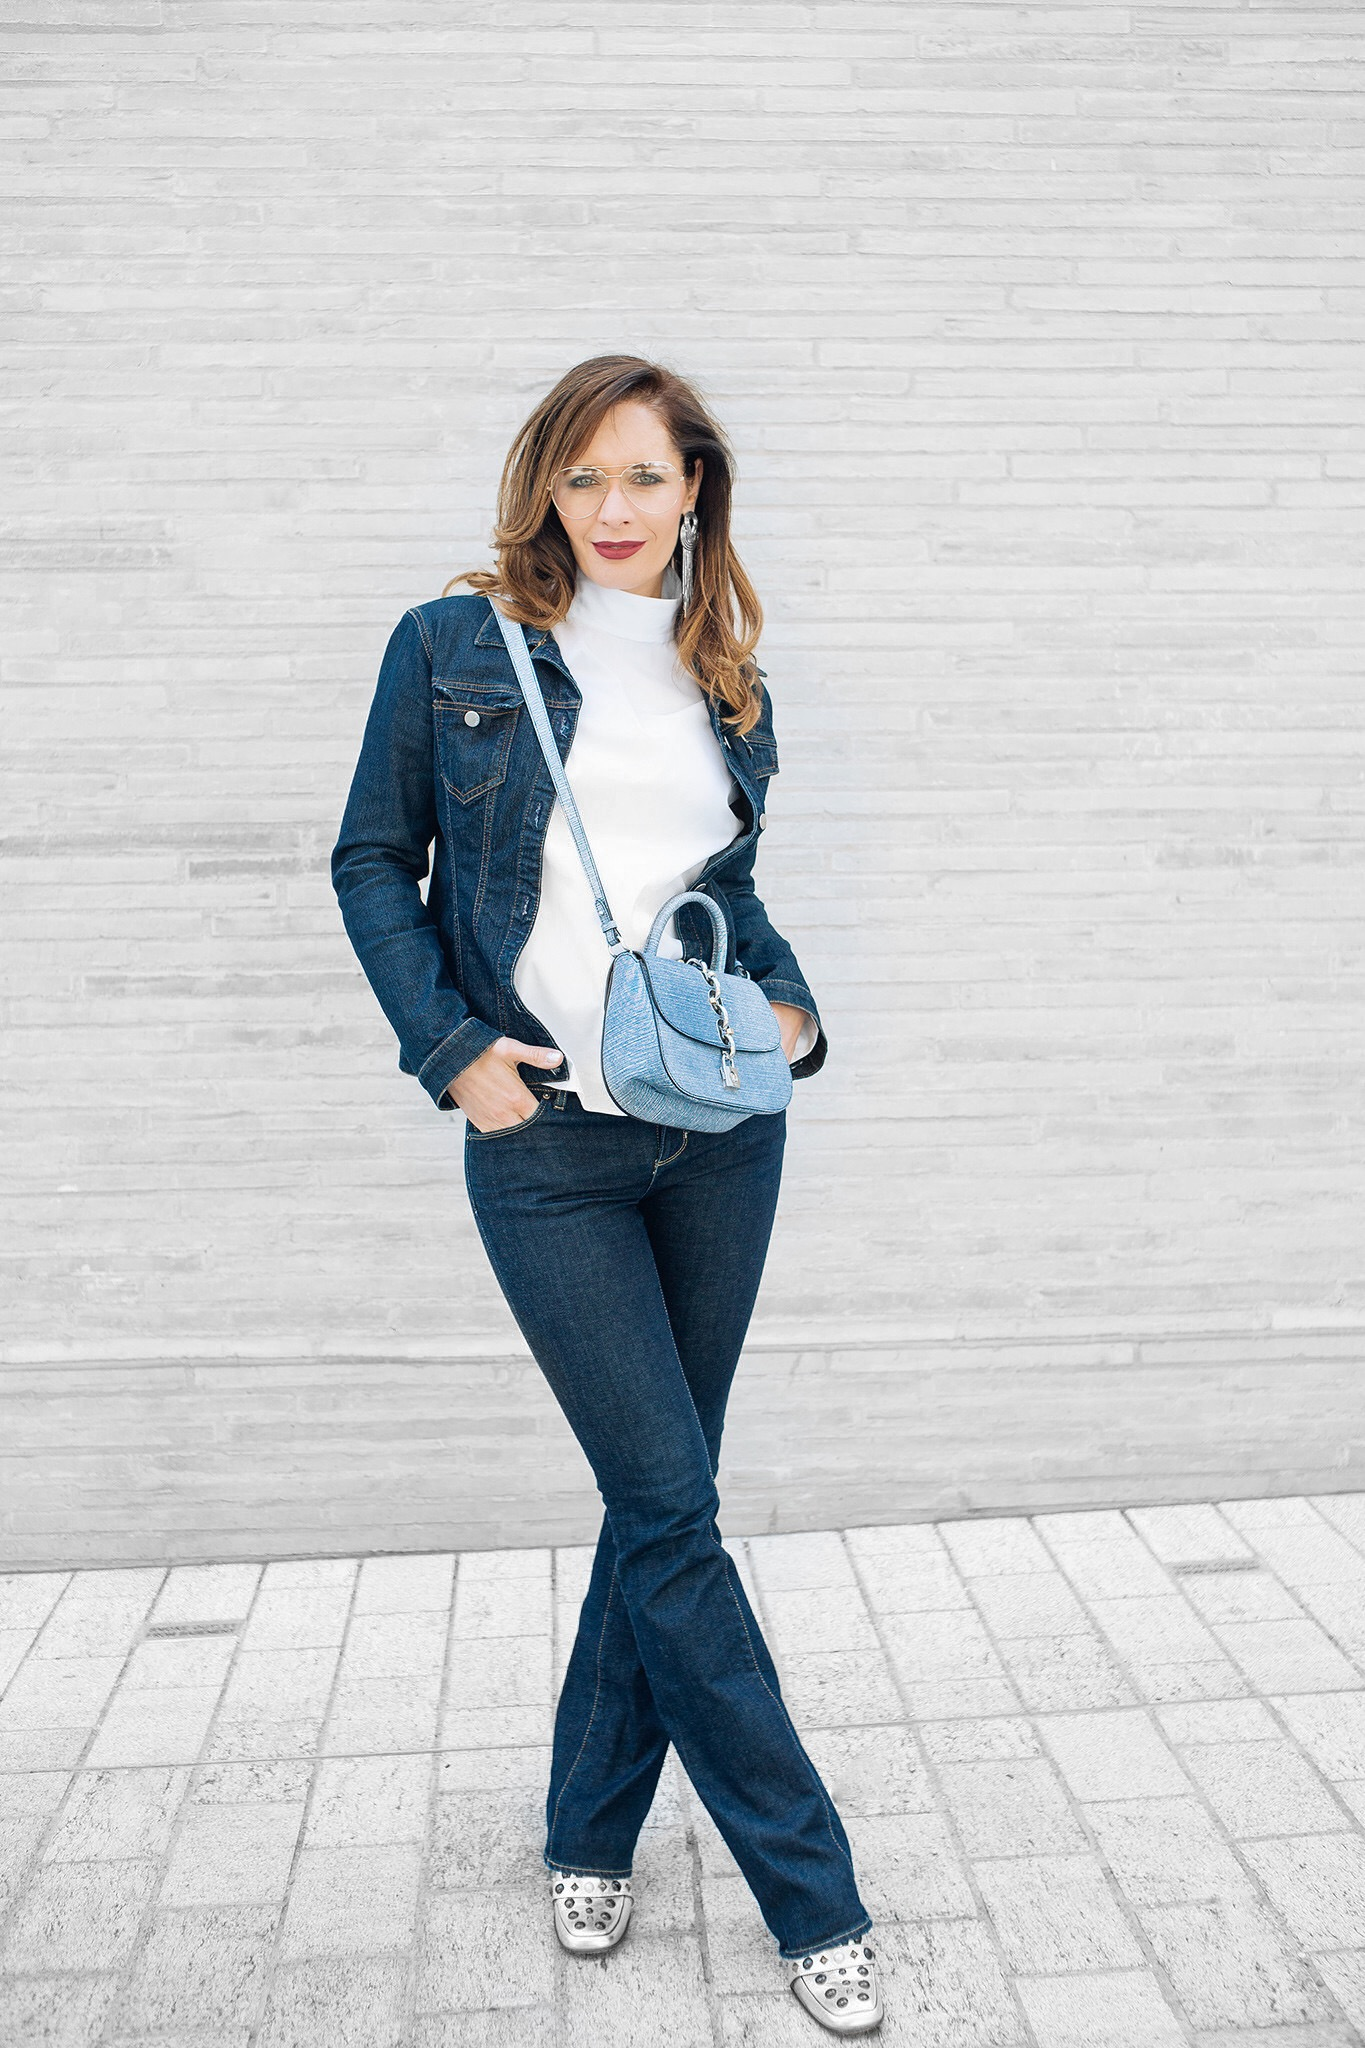 Petra from Chic Journal wears double denim and Louis Vuitton bag